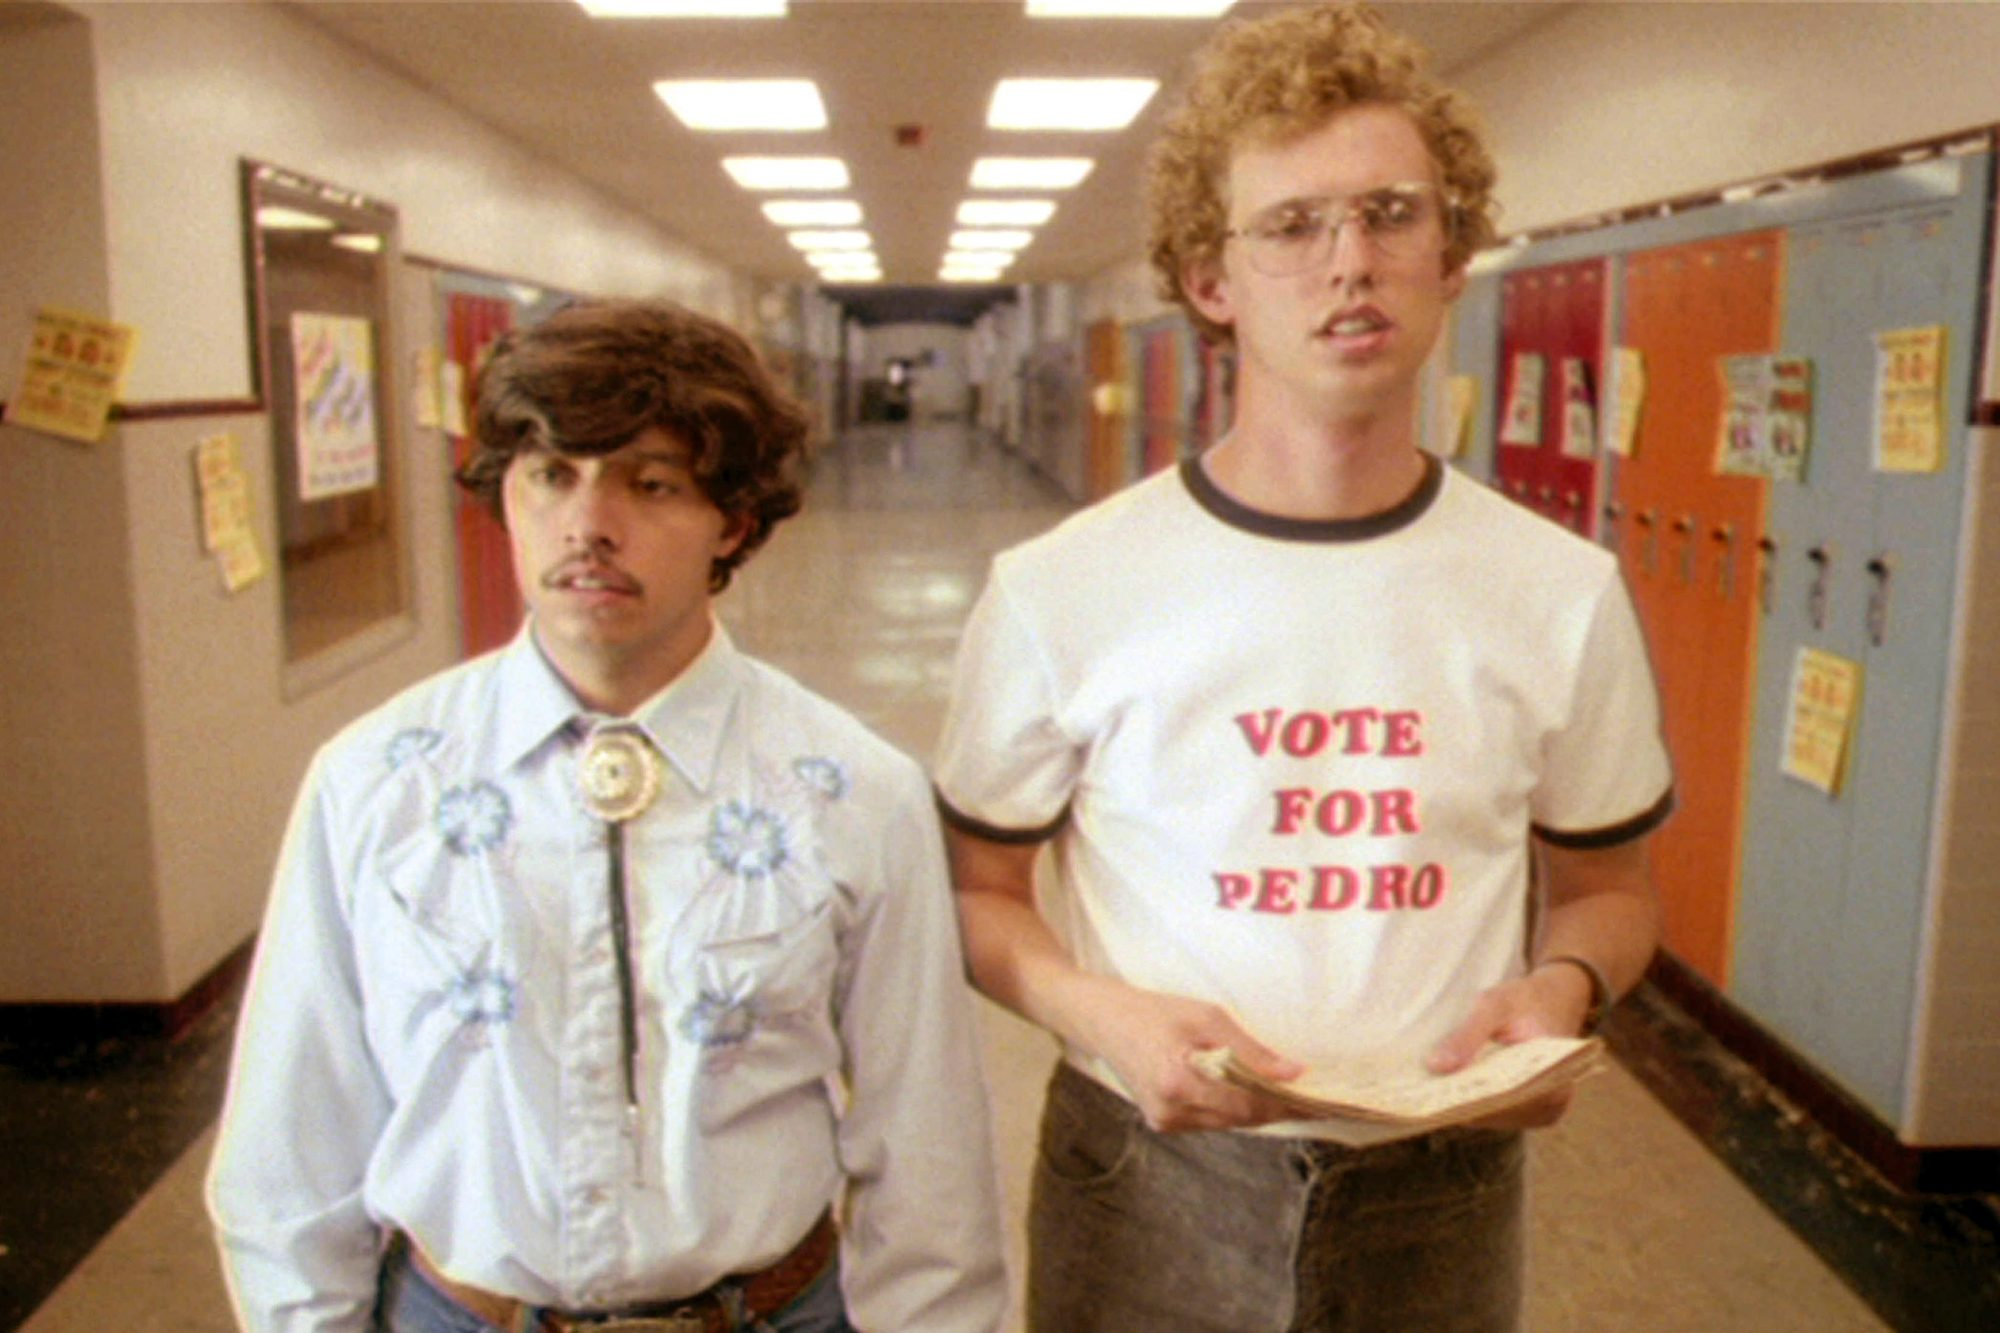 NAPOLEON DYNAMITE, Efren Ramirez, Jon Heder, 2004, (c) Fox Searchlight/courtesy Everett Collection